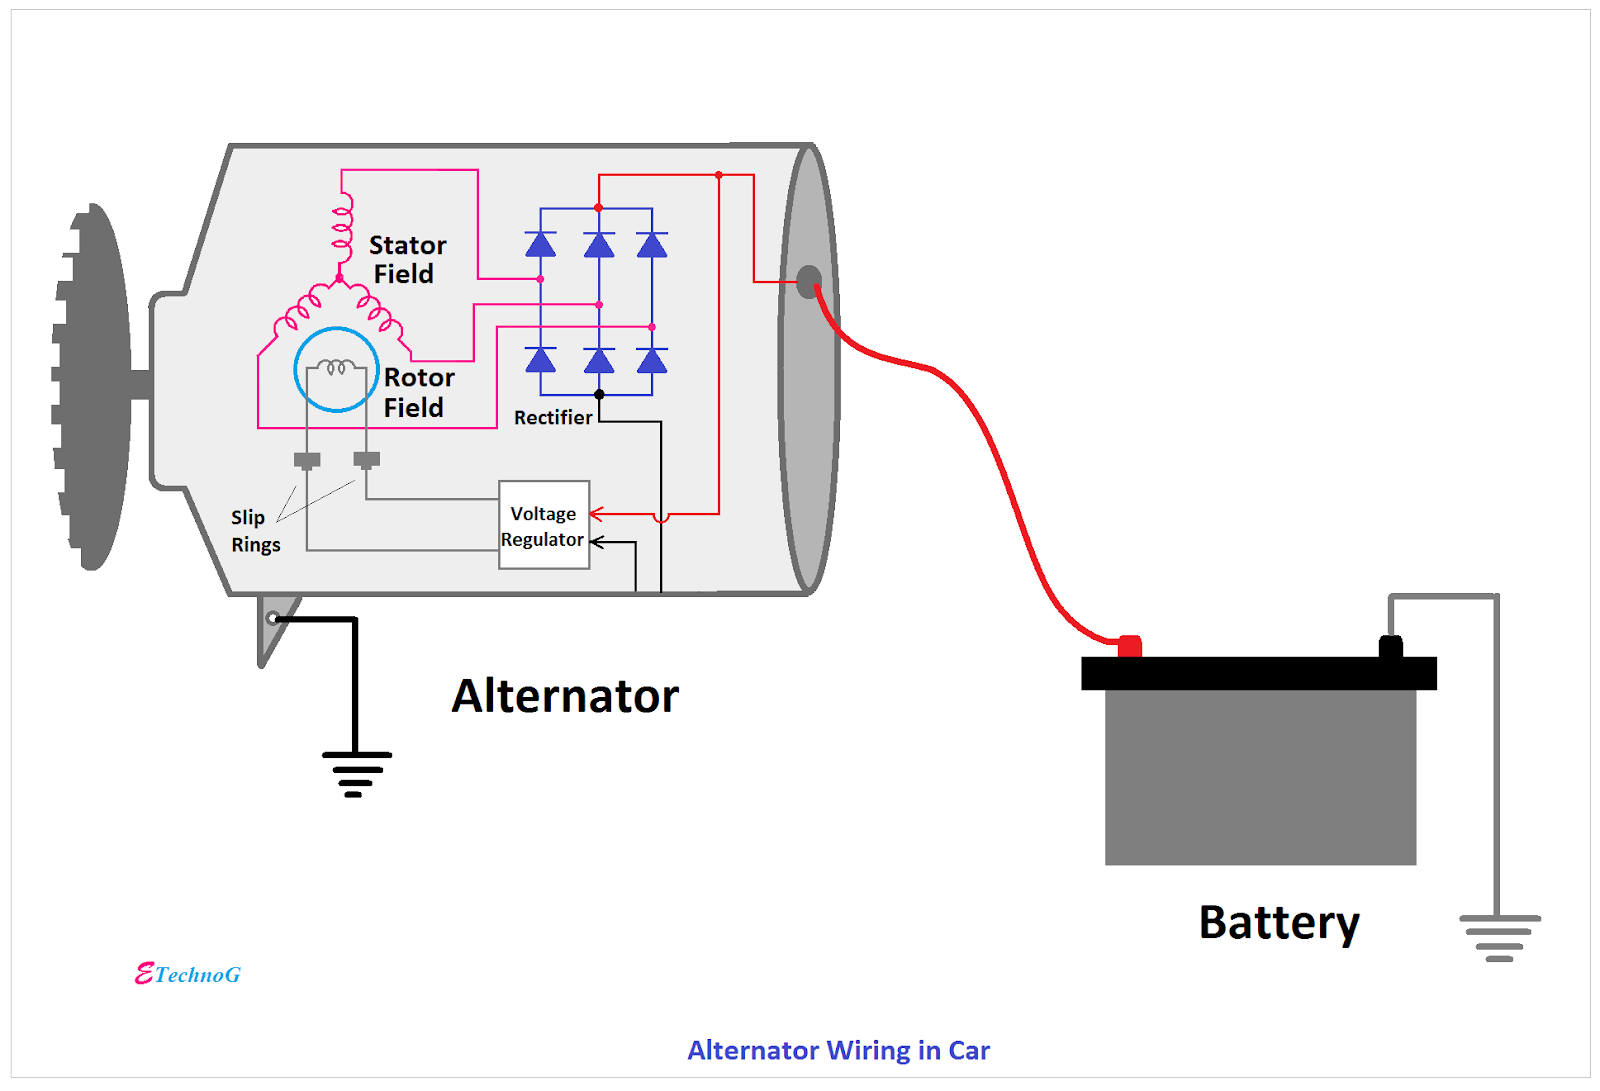 Alternator Function And Alternator Wiring Diagram In Car | Wiring Diagram Alternator To Battery